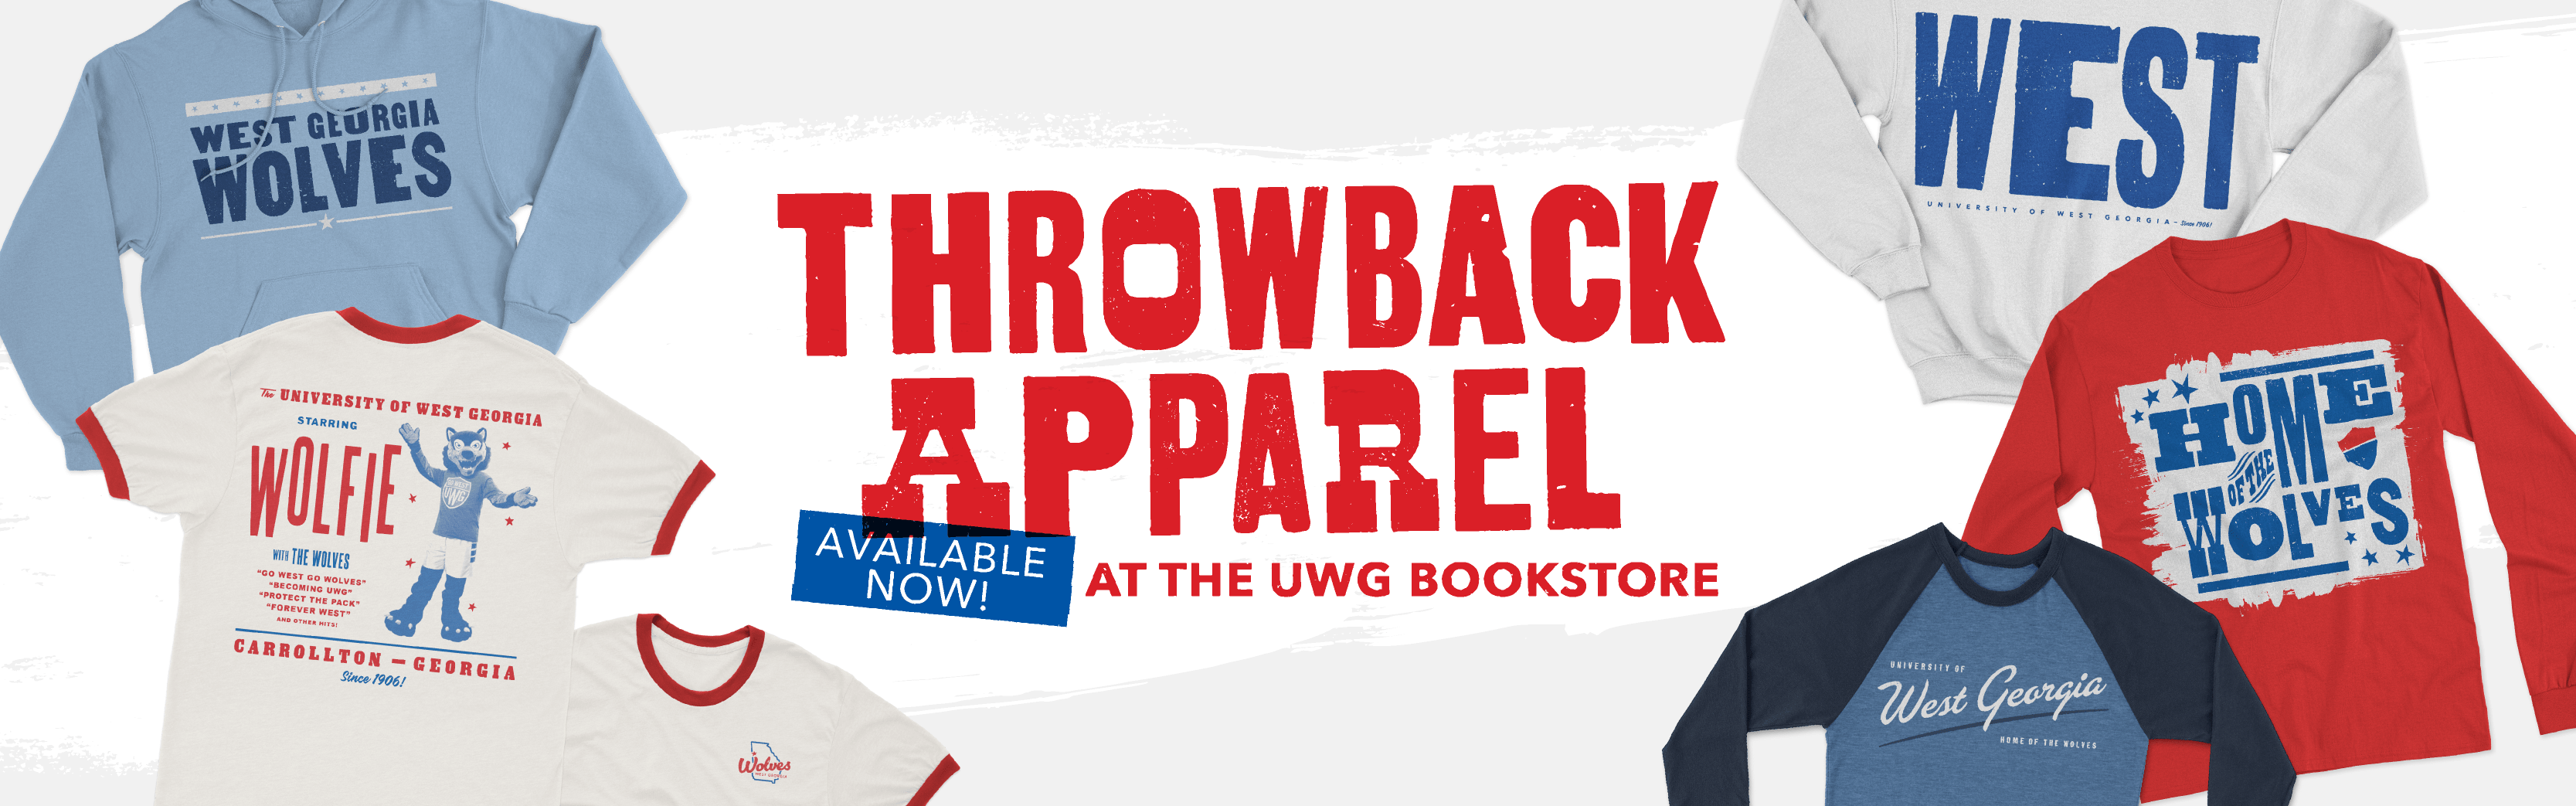 The Throwback Apparel Collection is now available at the UWG Bookstore